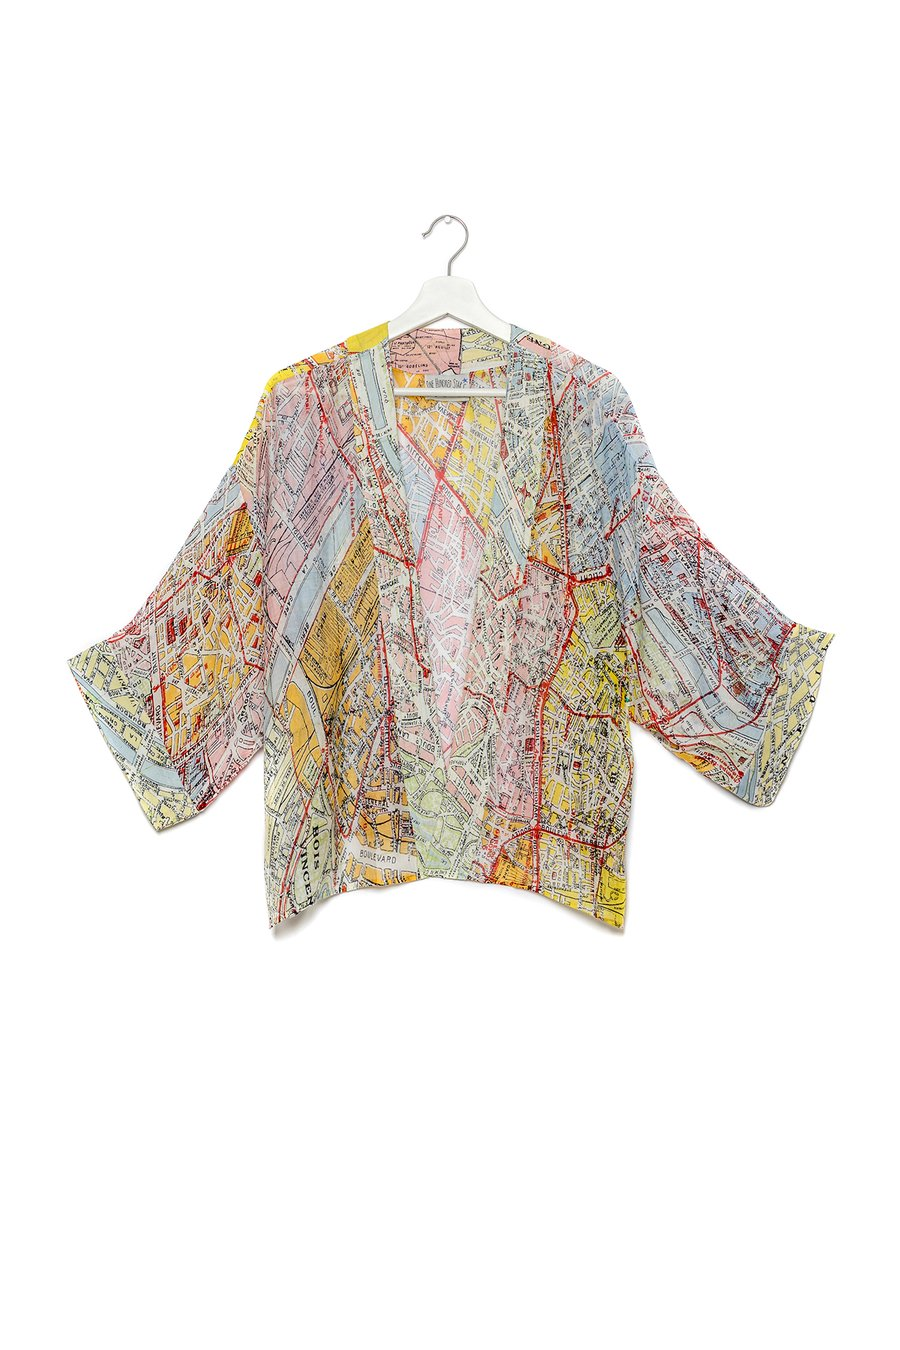 One Hundred Stars Valerie Paris Map Kimono